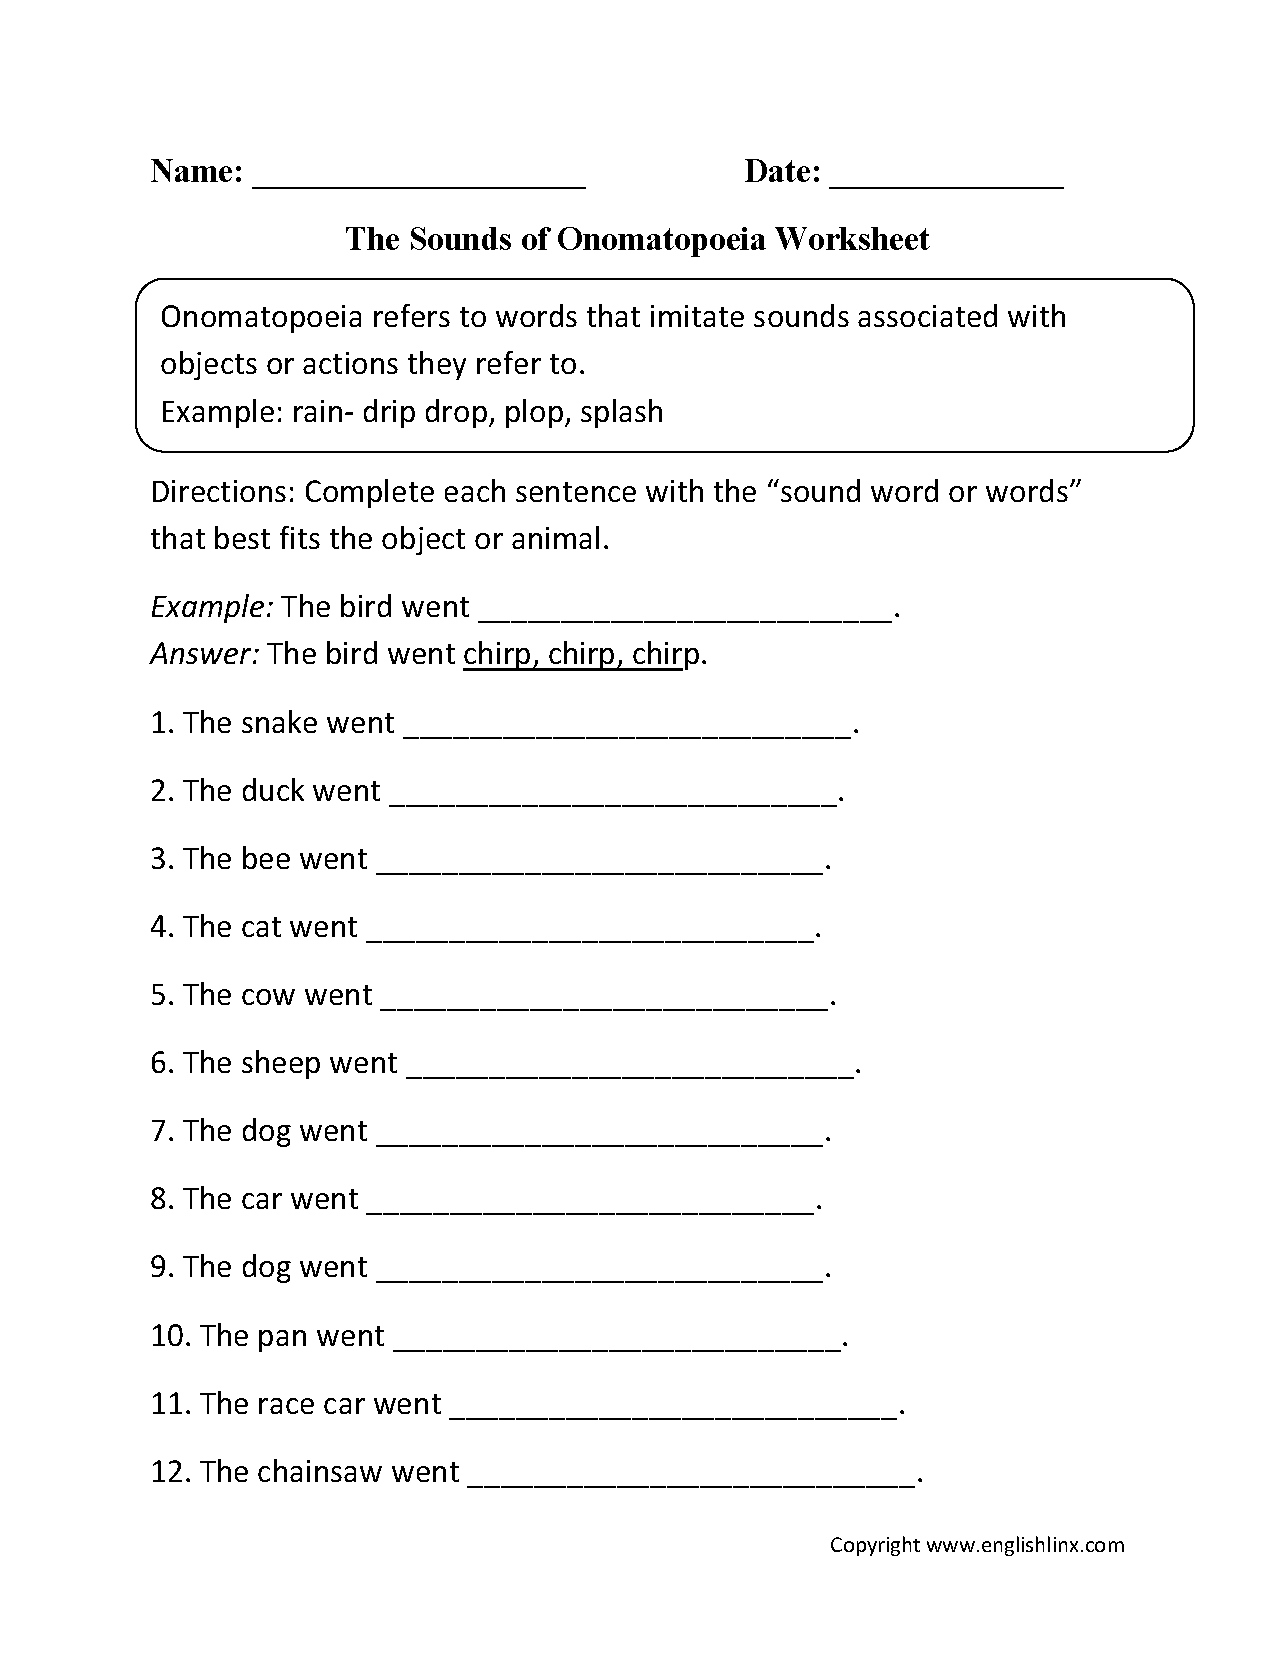 Aldiablosus  Nice Englishlinxcom  Onomatopoeia Worksheets With Luxury Worksheet With Delectable Vocabulary Worksheets For Th Grade Also Th Grade Editing Worksheets In Addition Beautiful Handwriting Worksheets And Comprehension Worksheets Grade  As Well As Algebraic Equations Word Problems Worksheet Additionally Multiplying And Dividing Decimals By Powers Of  Worksheet From Englishlinxcom With Aldiablosus  Luxury Englishlinxcom  Onomatopoeia Worksheets With Delectable Worksheet And Nice Vocabulary Worksheets For Th Grade Also Th Grade Editing Worksheets In Addition Beautiful Handwriting Worksheets From Englishlinxcom